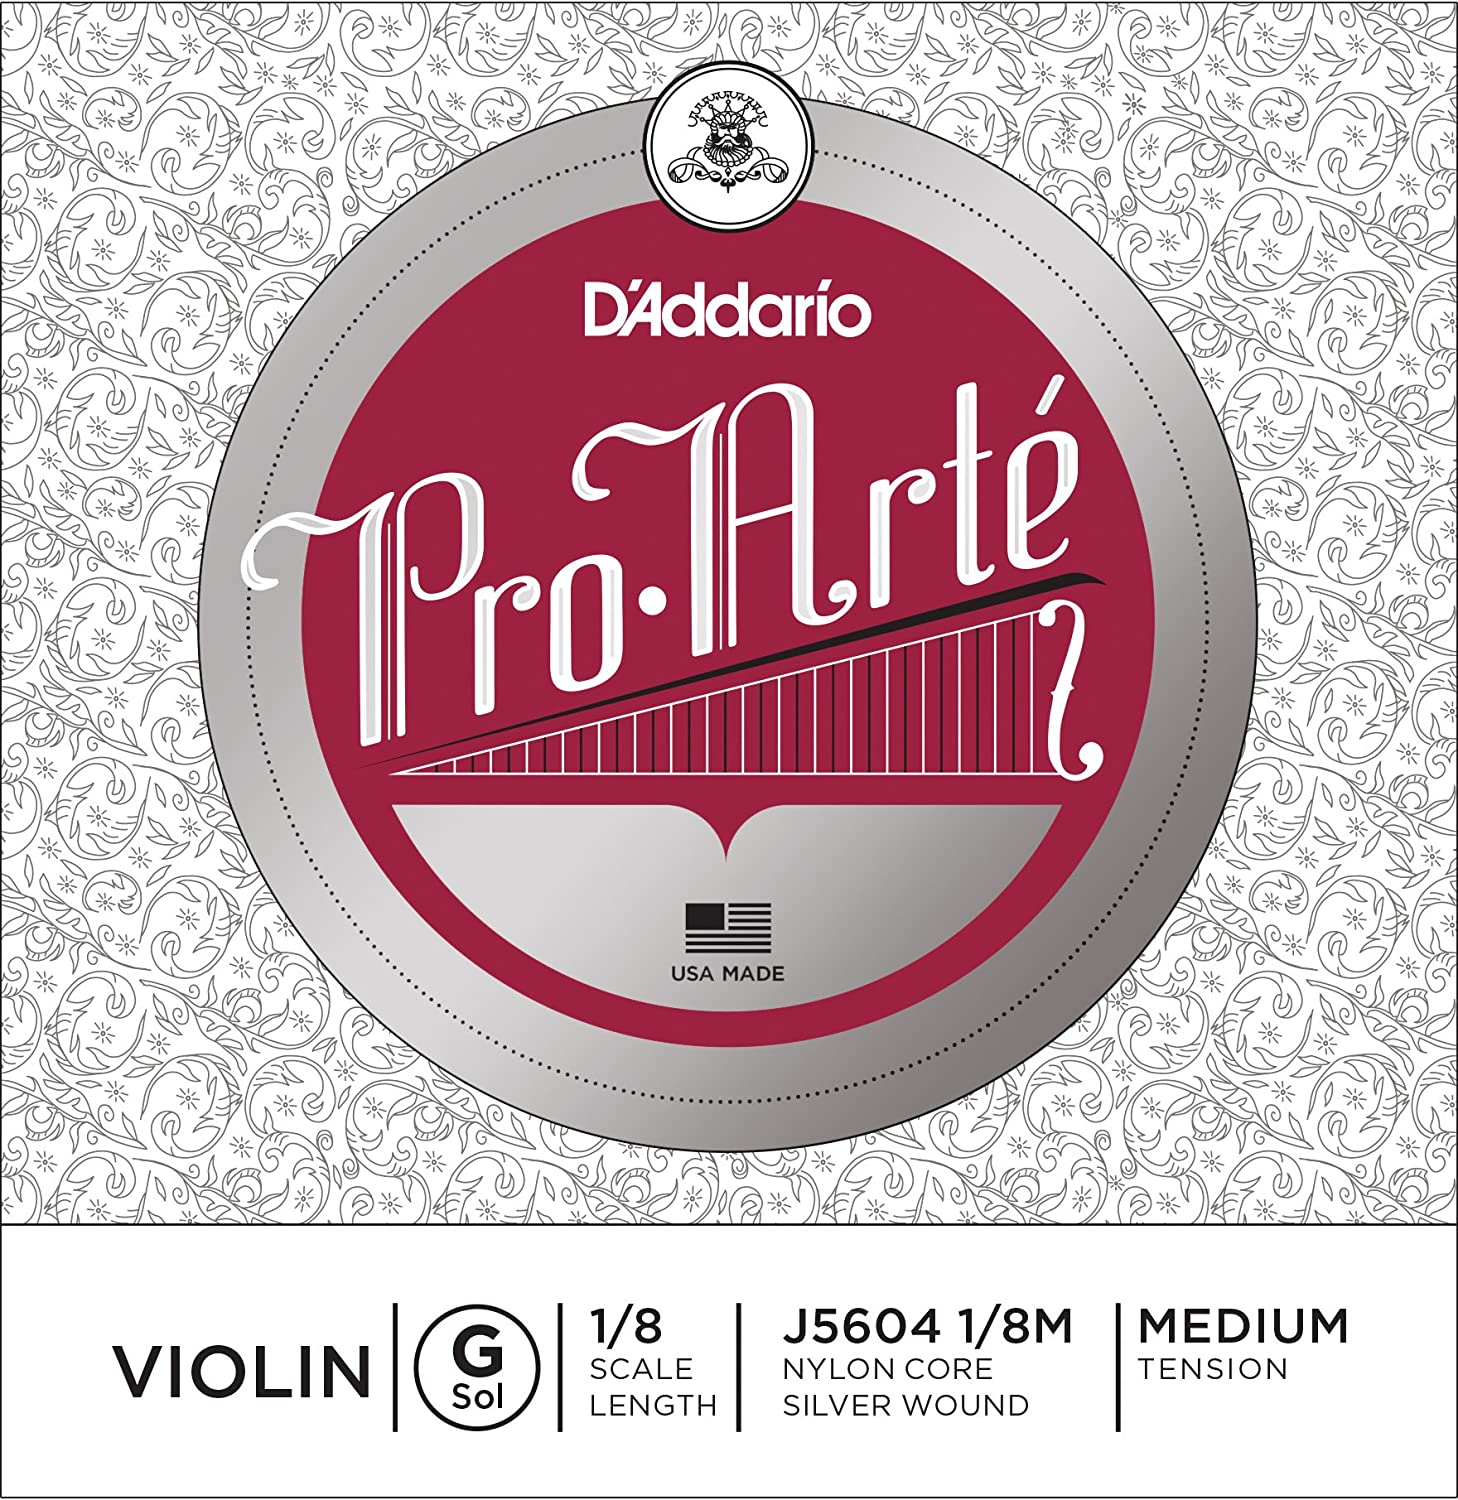 D'Addario Pro-Arte Violin Single G String, 1/4 Scale, Medium Tension D' Addario J5604 1/4M